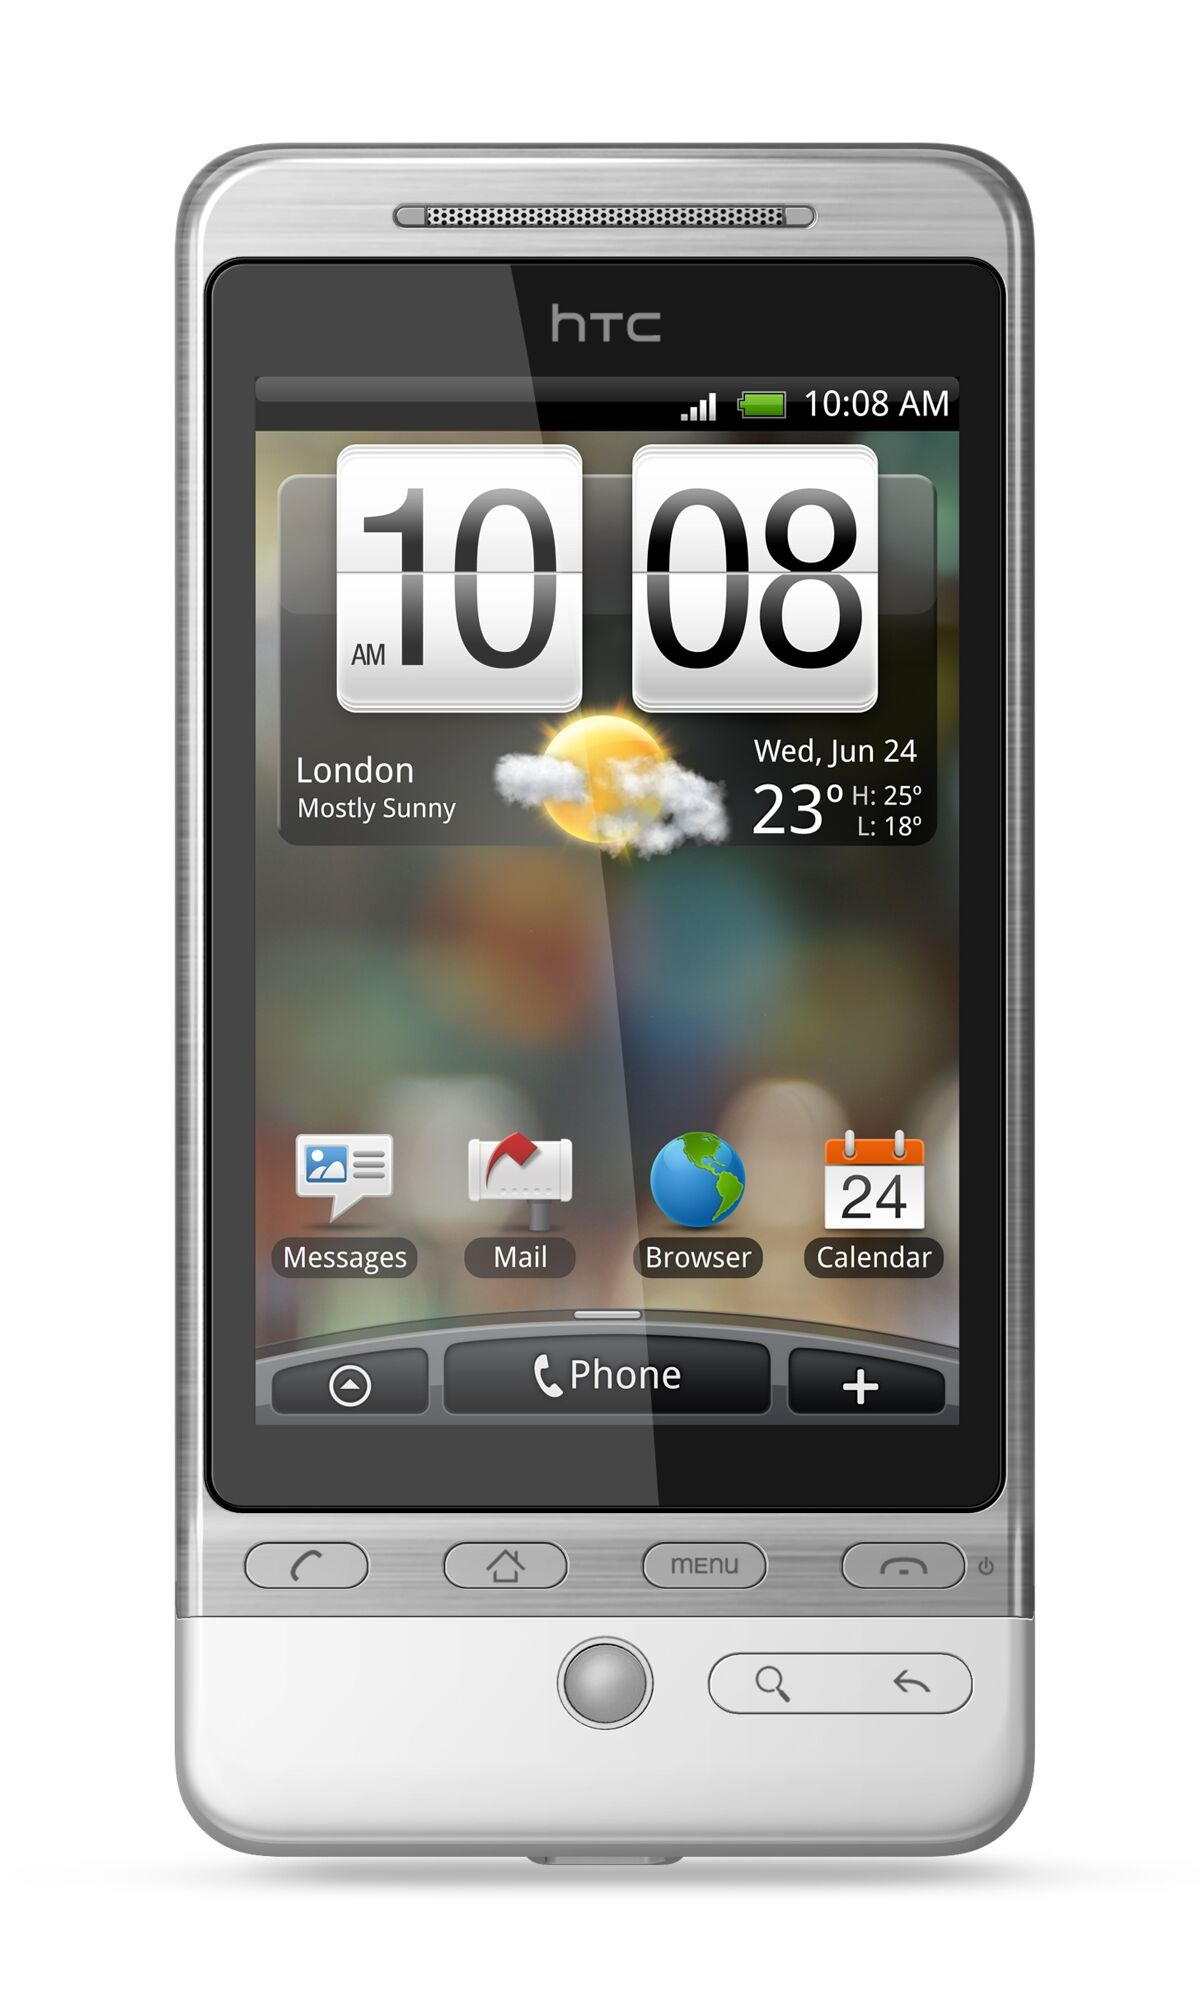 Nowy Android HTC HERO